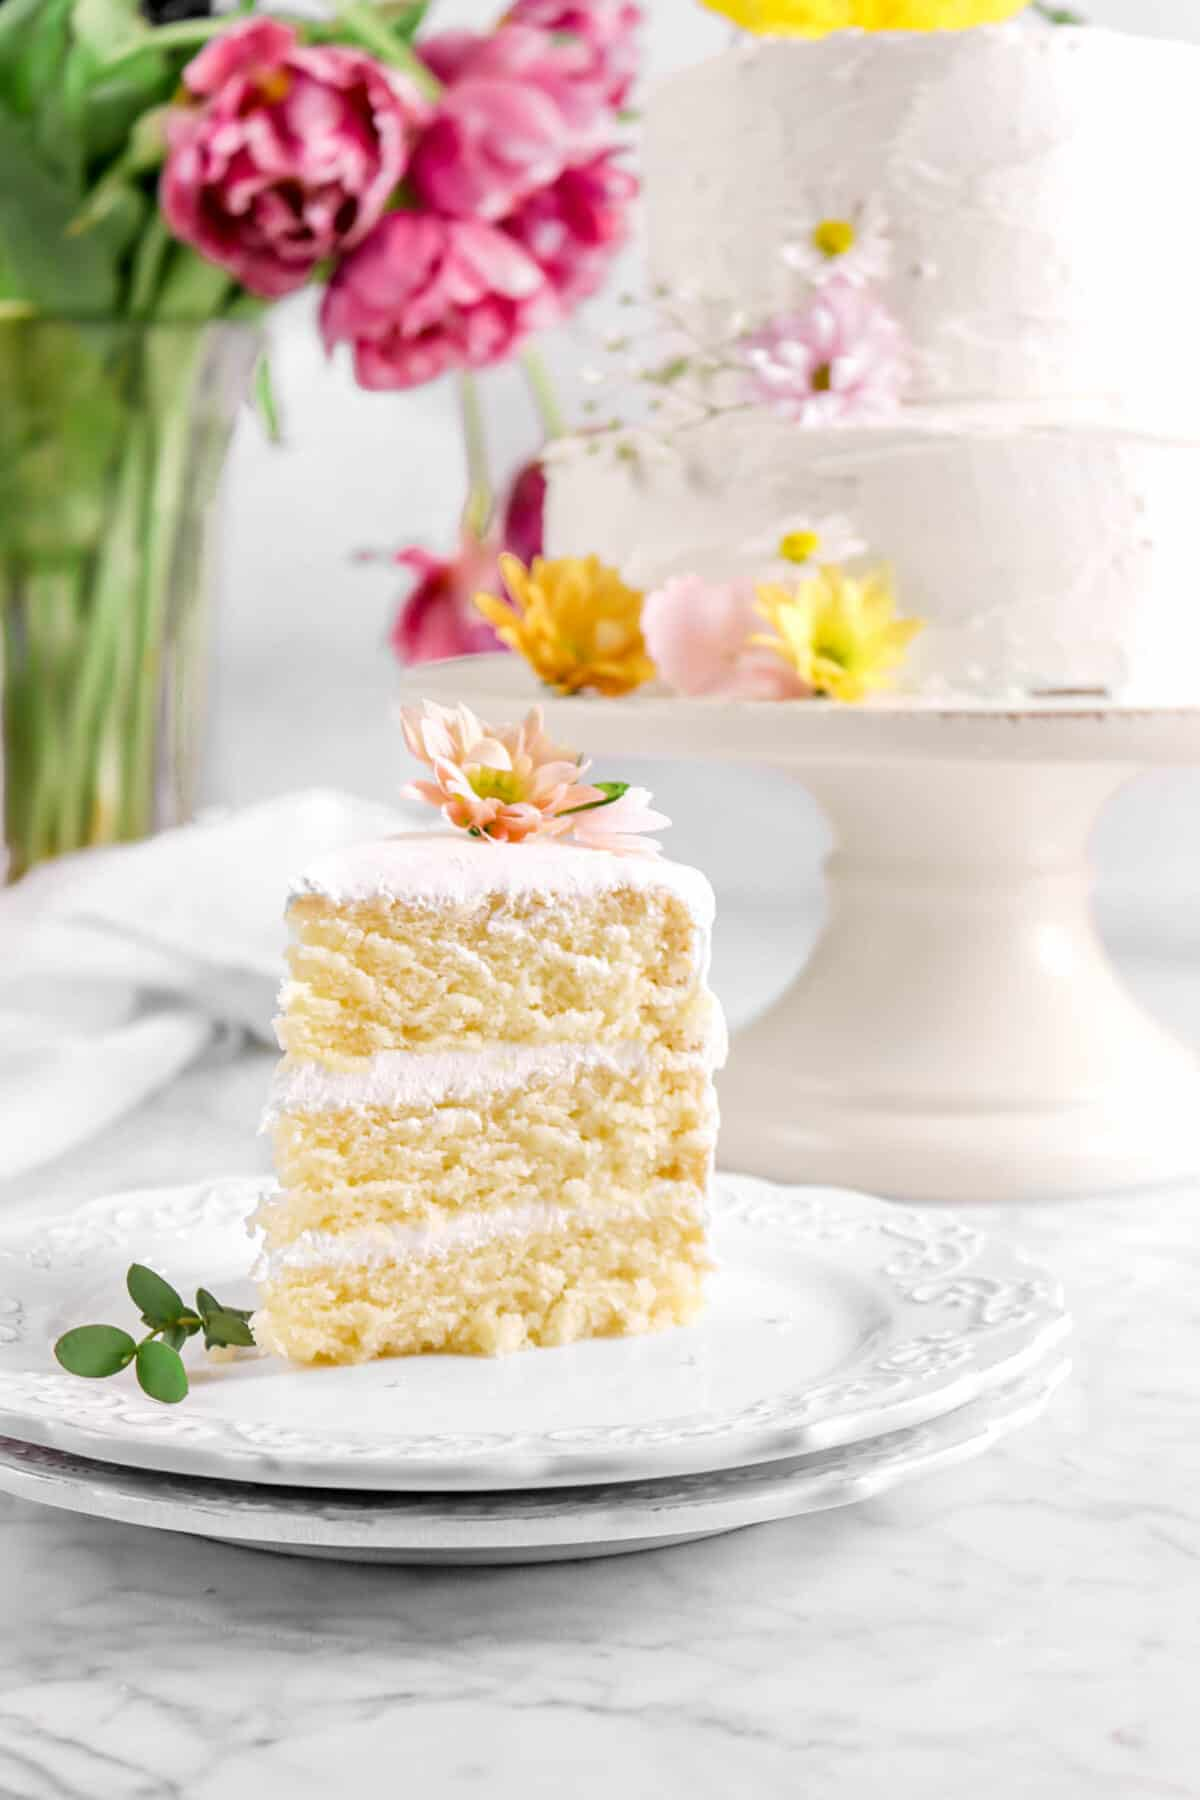 slice of vegan almond cake on white plate with flowers, cake behind, and and pink peonies